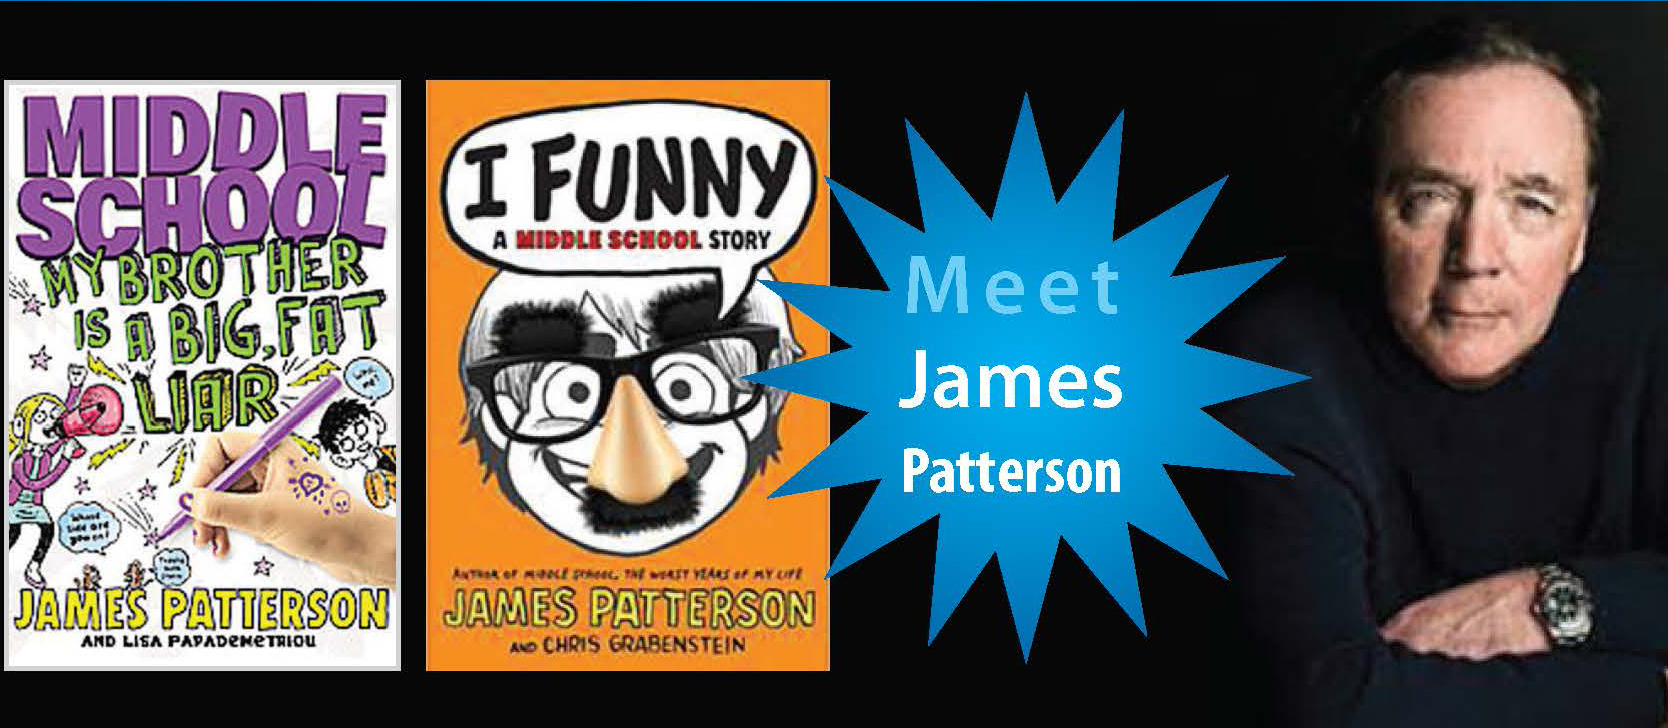 Meet James Patterson at the NAESP Foundation Jeans & Jerseys fundraiser